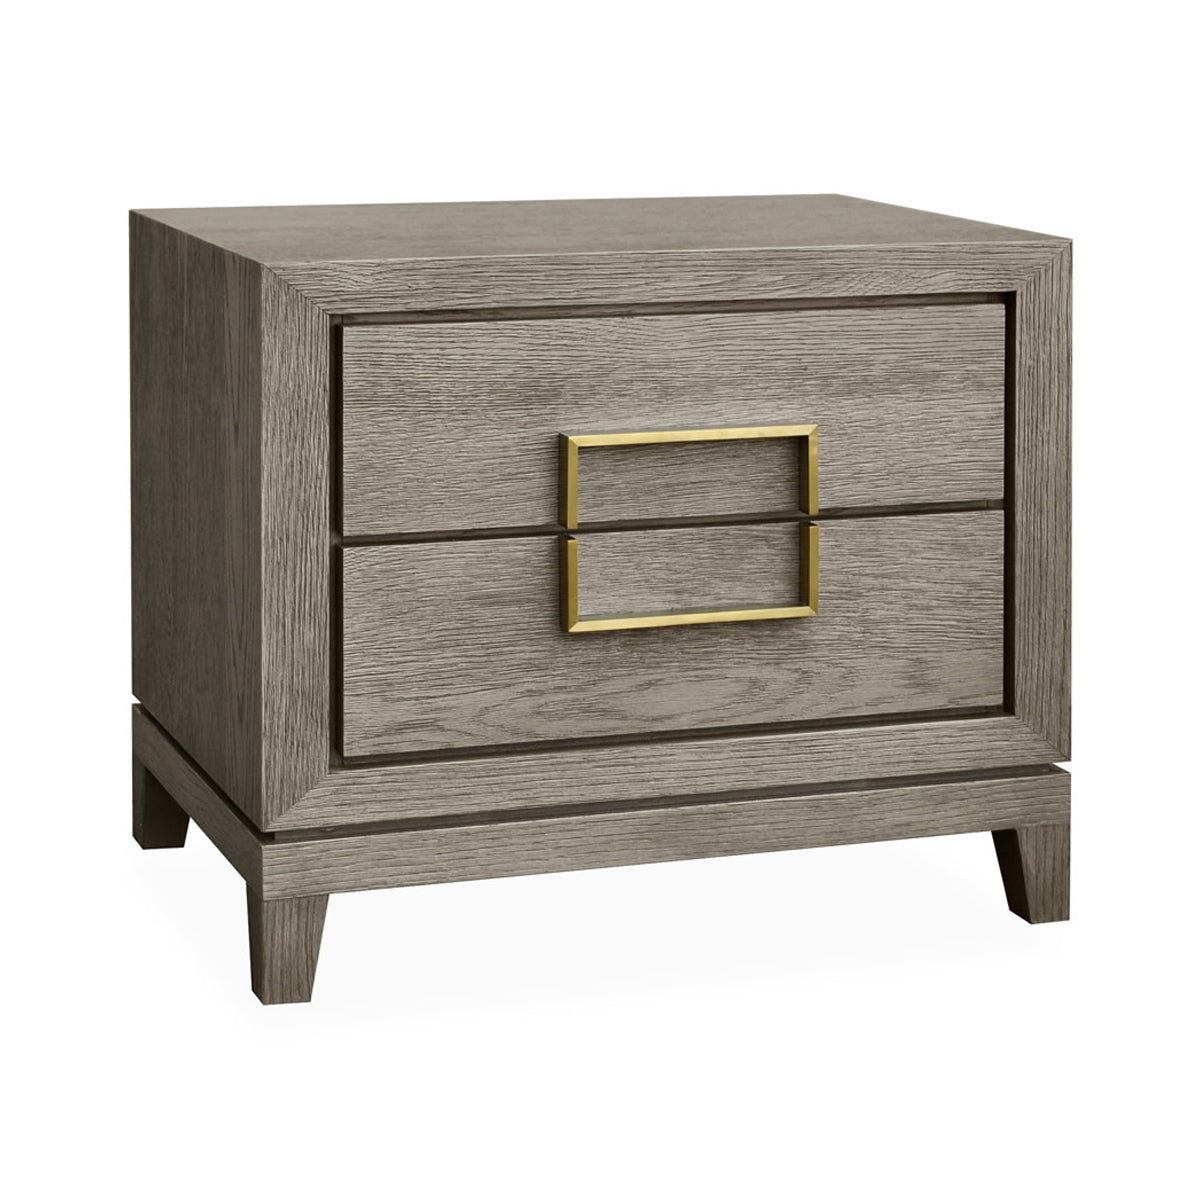 Berkeley Designs Lucca Bedside Table Shropshire Design